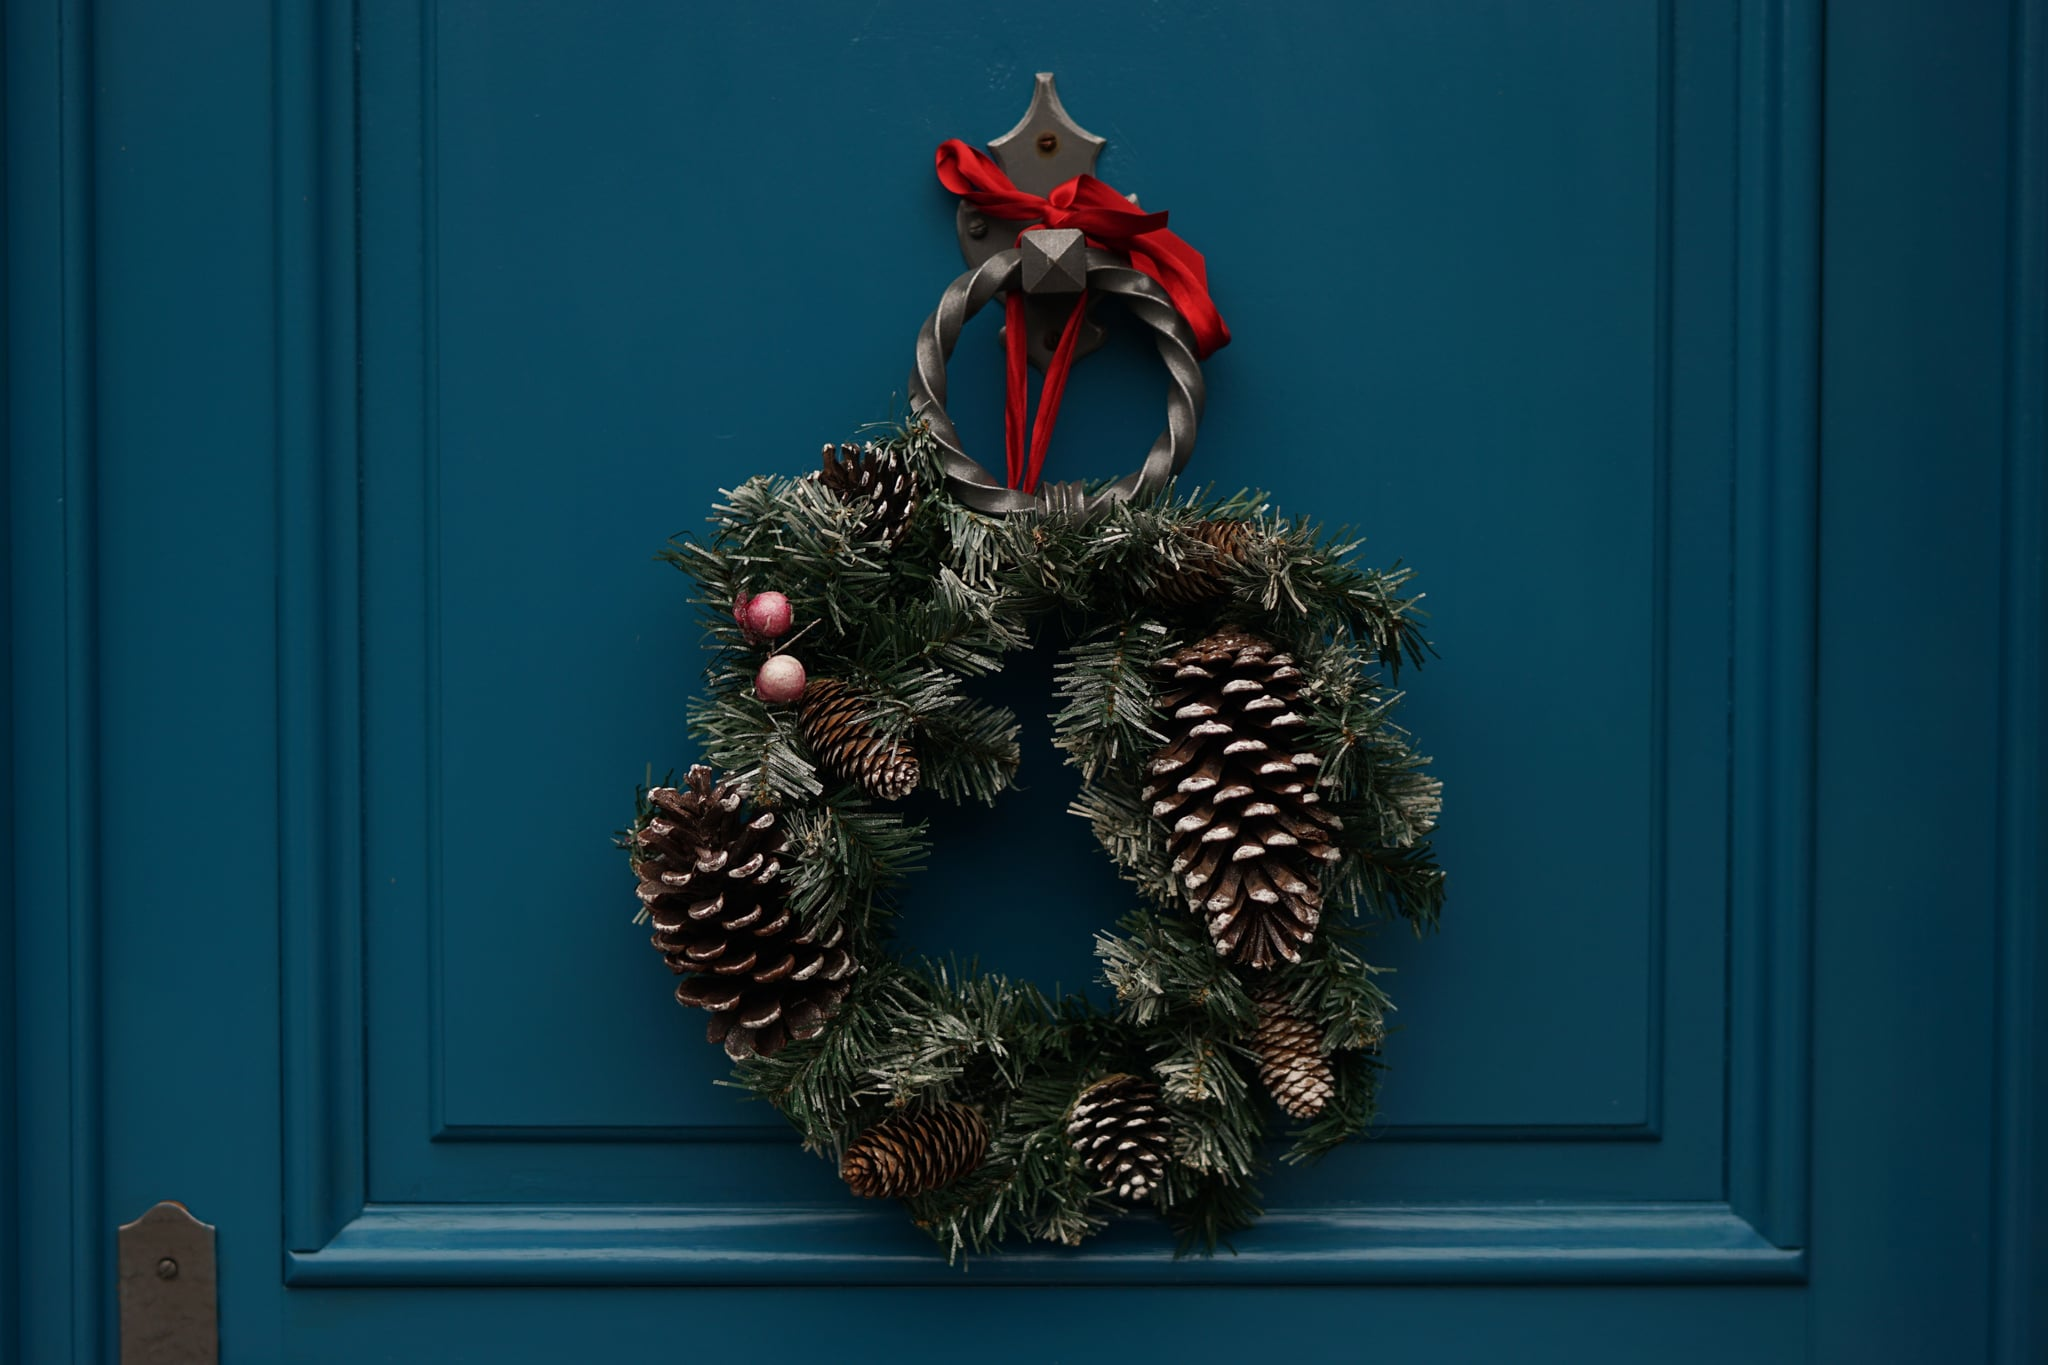 How to deal with first holidays after divorce popsugar moms the first set of holidays after your divorce arent easy the fourth set of holidays after divorce arent easy either but that definitely doesnt mean you solutioingenieria Gallery